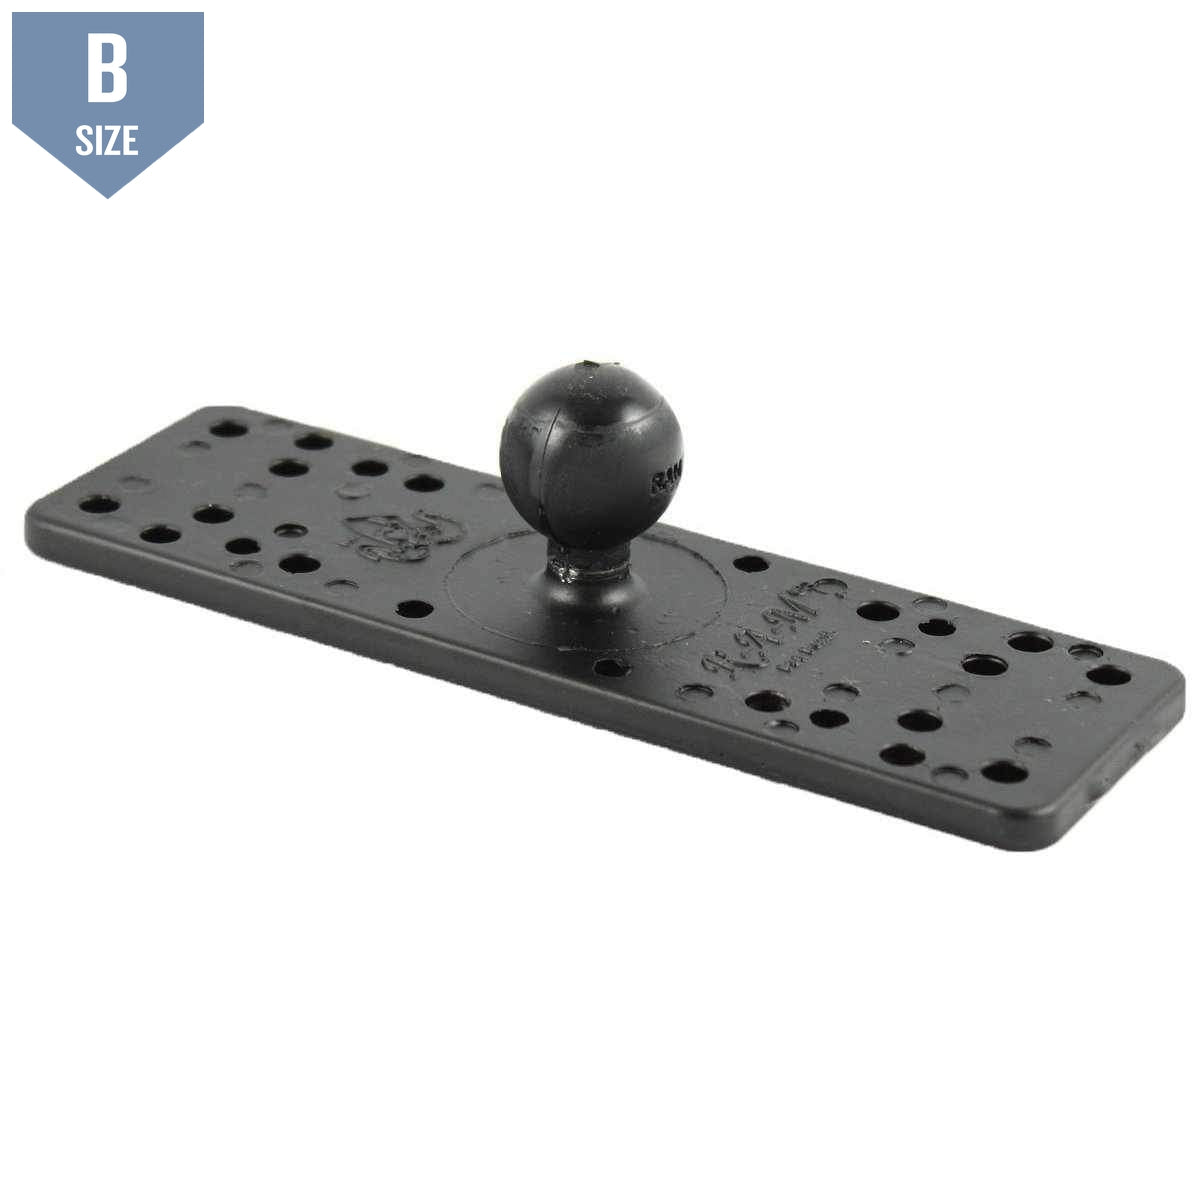 "RAM 6.25"" X 2"" Rectangle Base with 1"" Ball (RAM-B-111BU) - Modest Mounts"